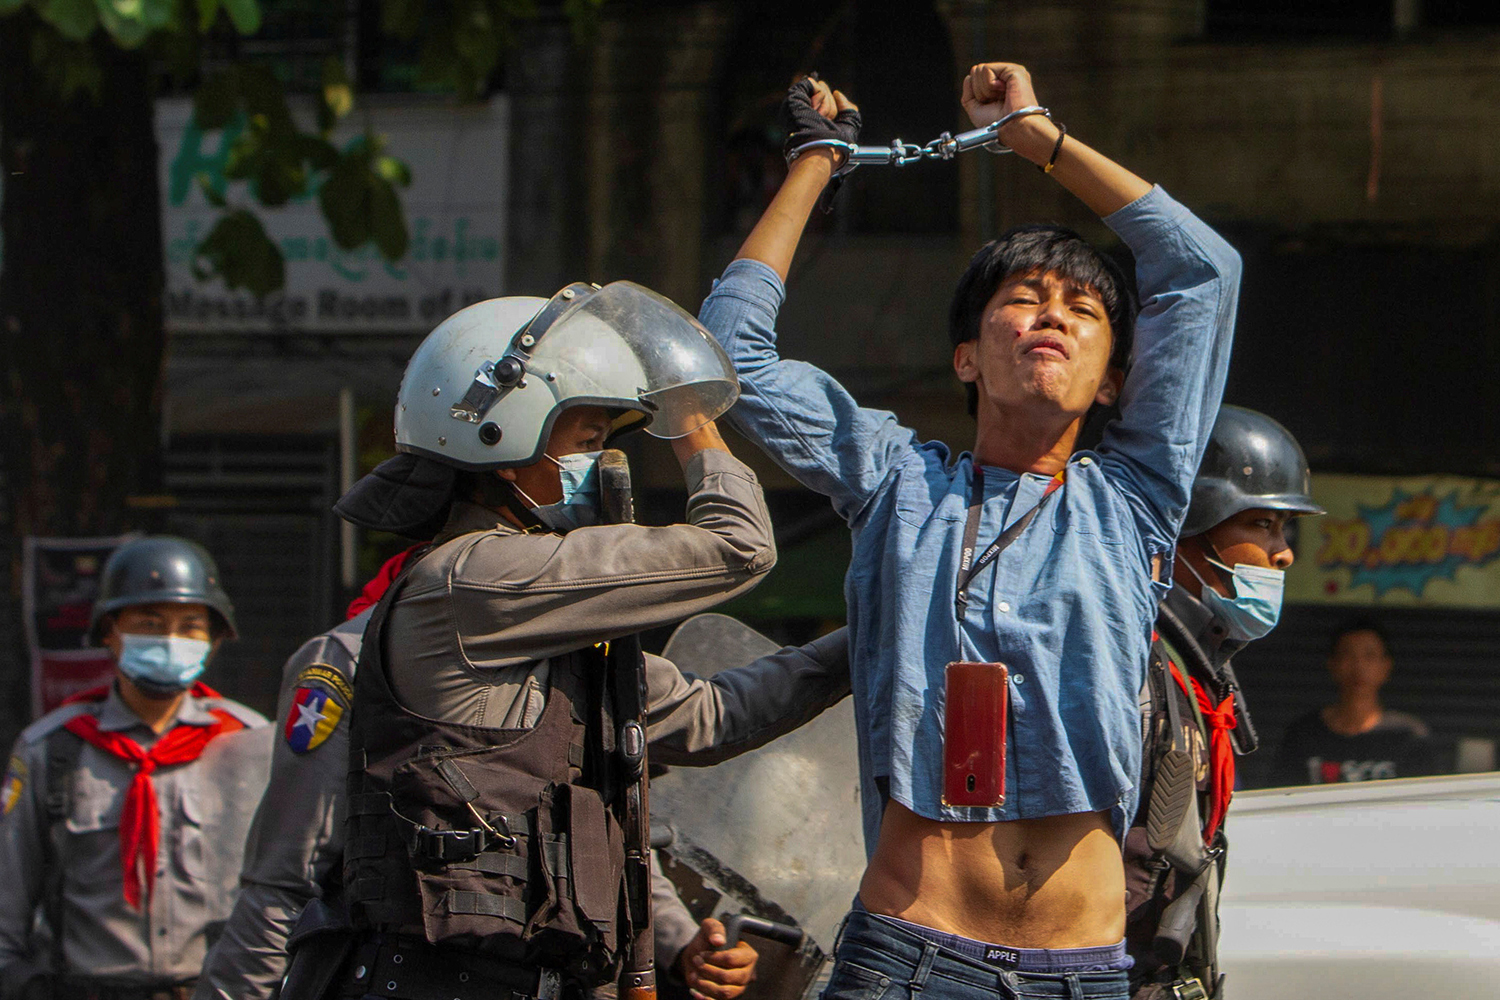 A pro-democracy protester is detained by riot police officers during a rally against the military coup in Yangon, Myanmar, on Feb. 27. Stringer/REUTERS